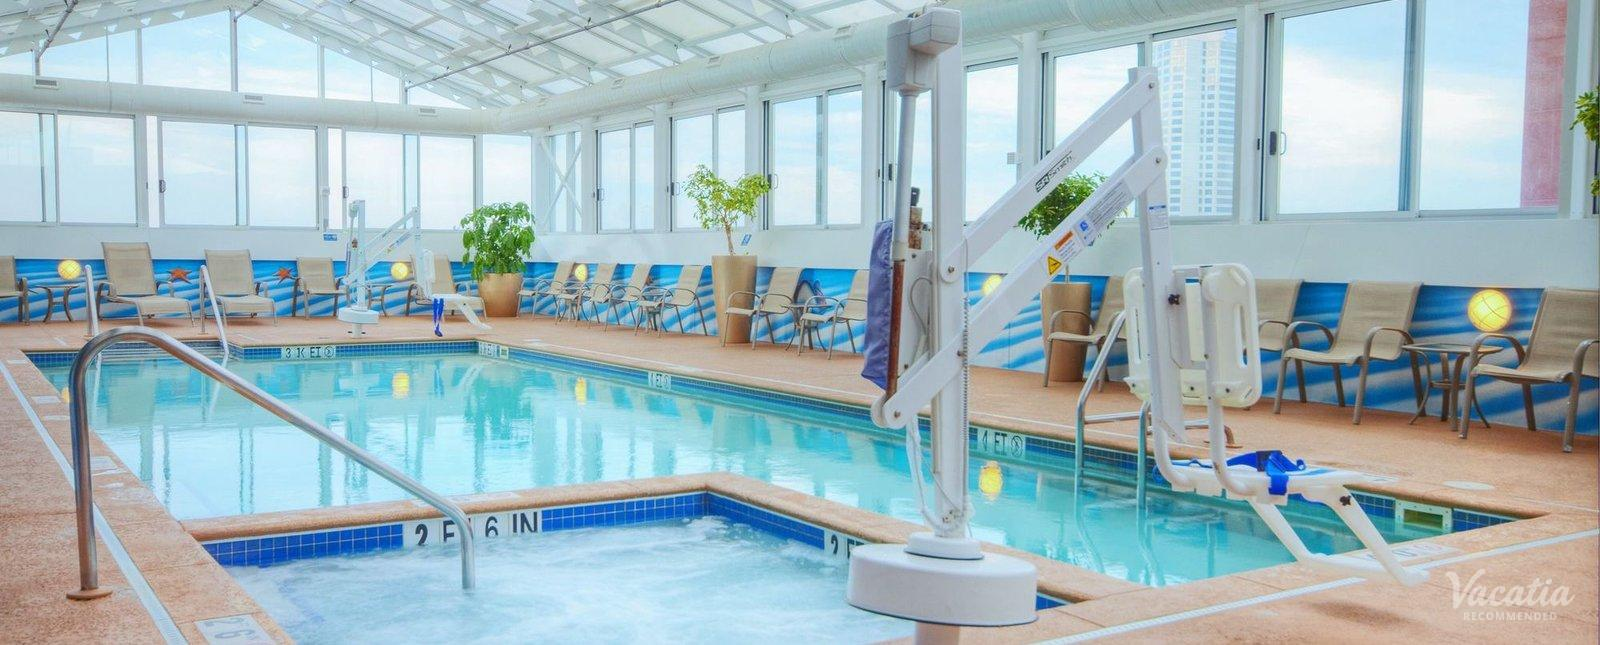 Wyndham Skyline Tower Indoor Pool